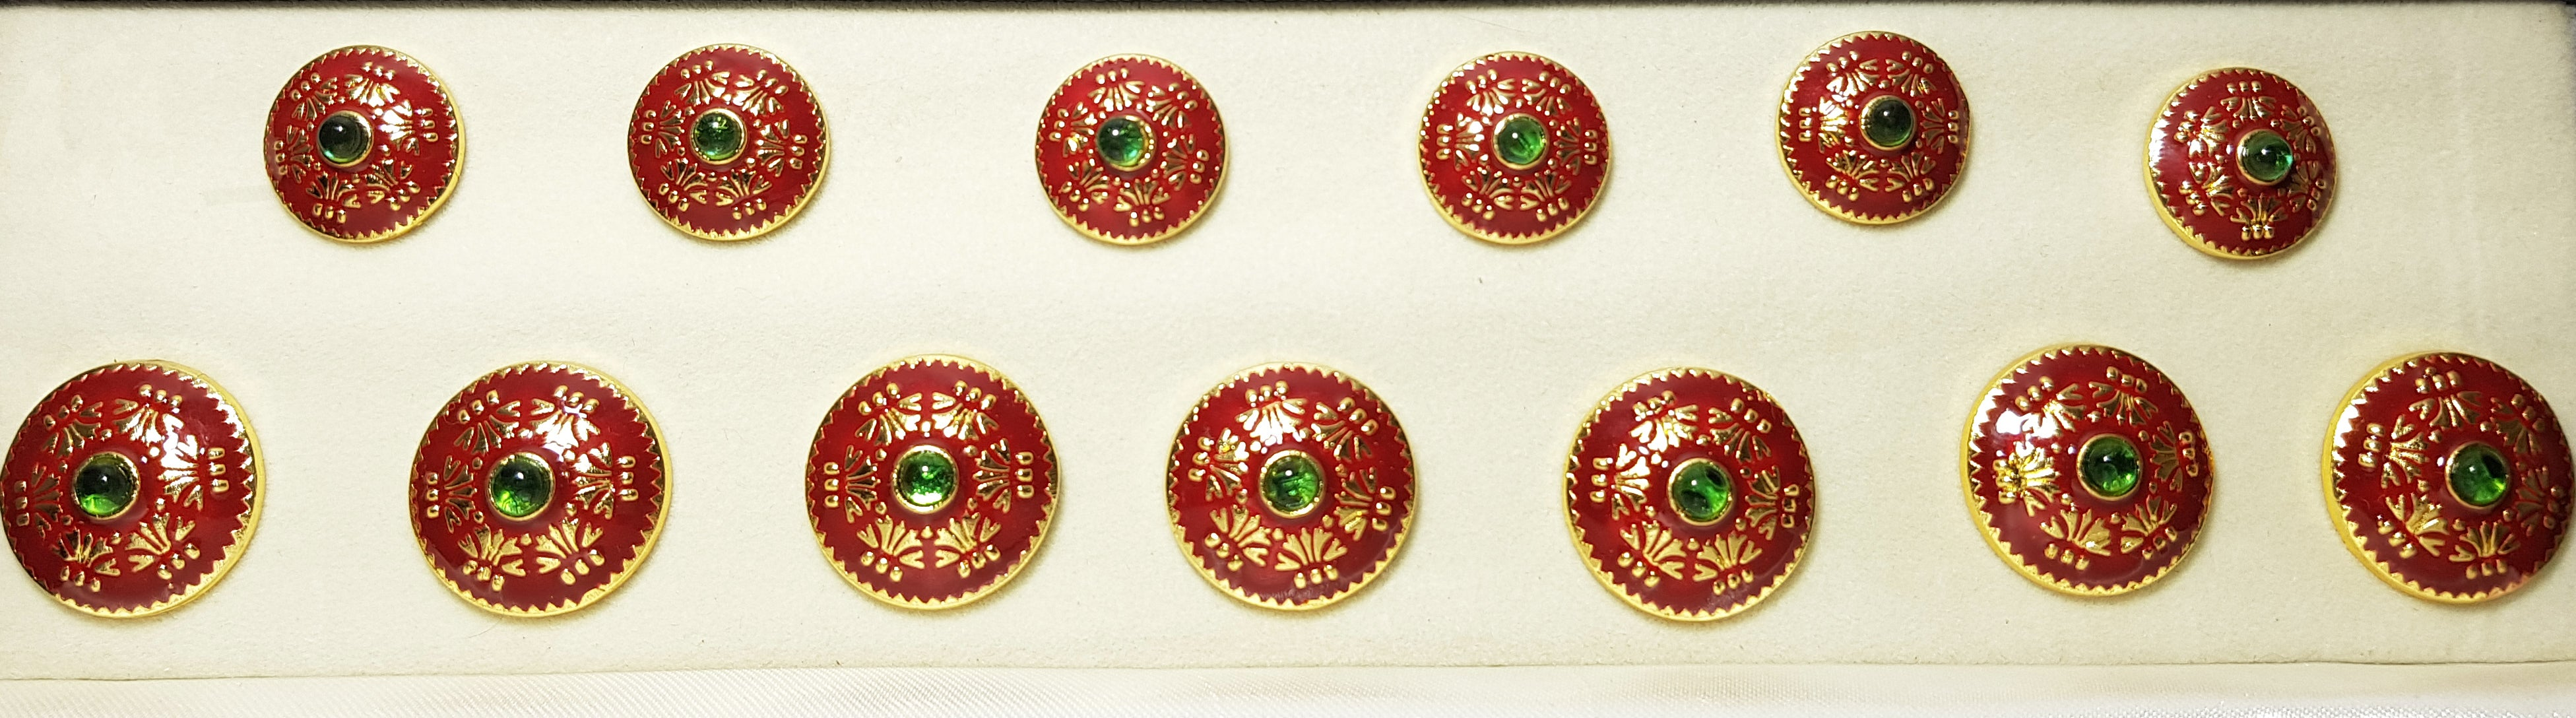 Maroon Rayons Button with Green Stone